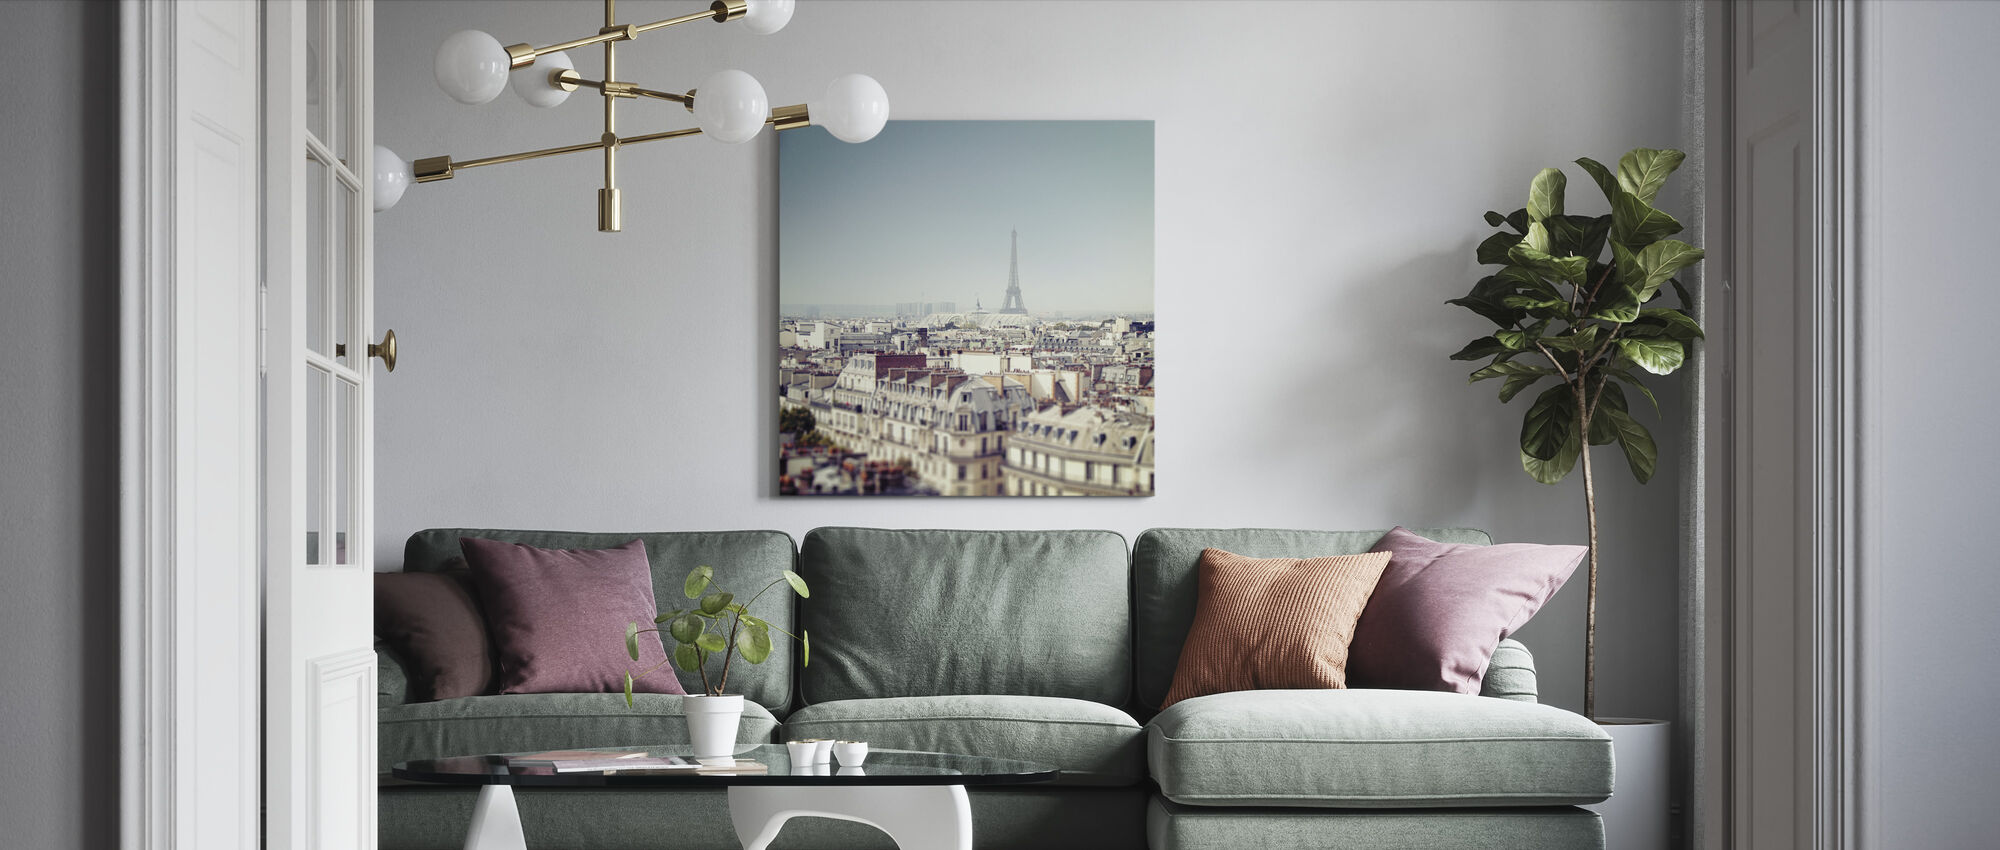 Paris Moments VI - Canvas print - Living Room